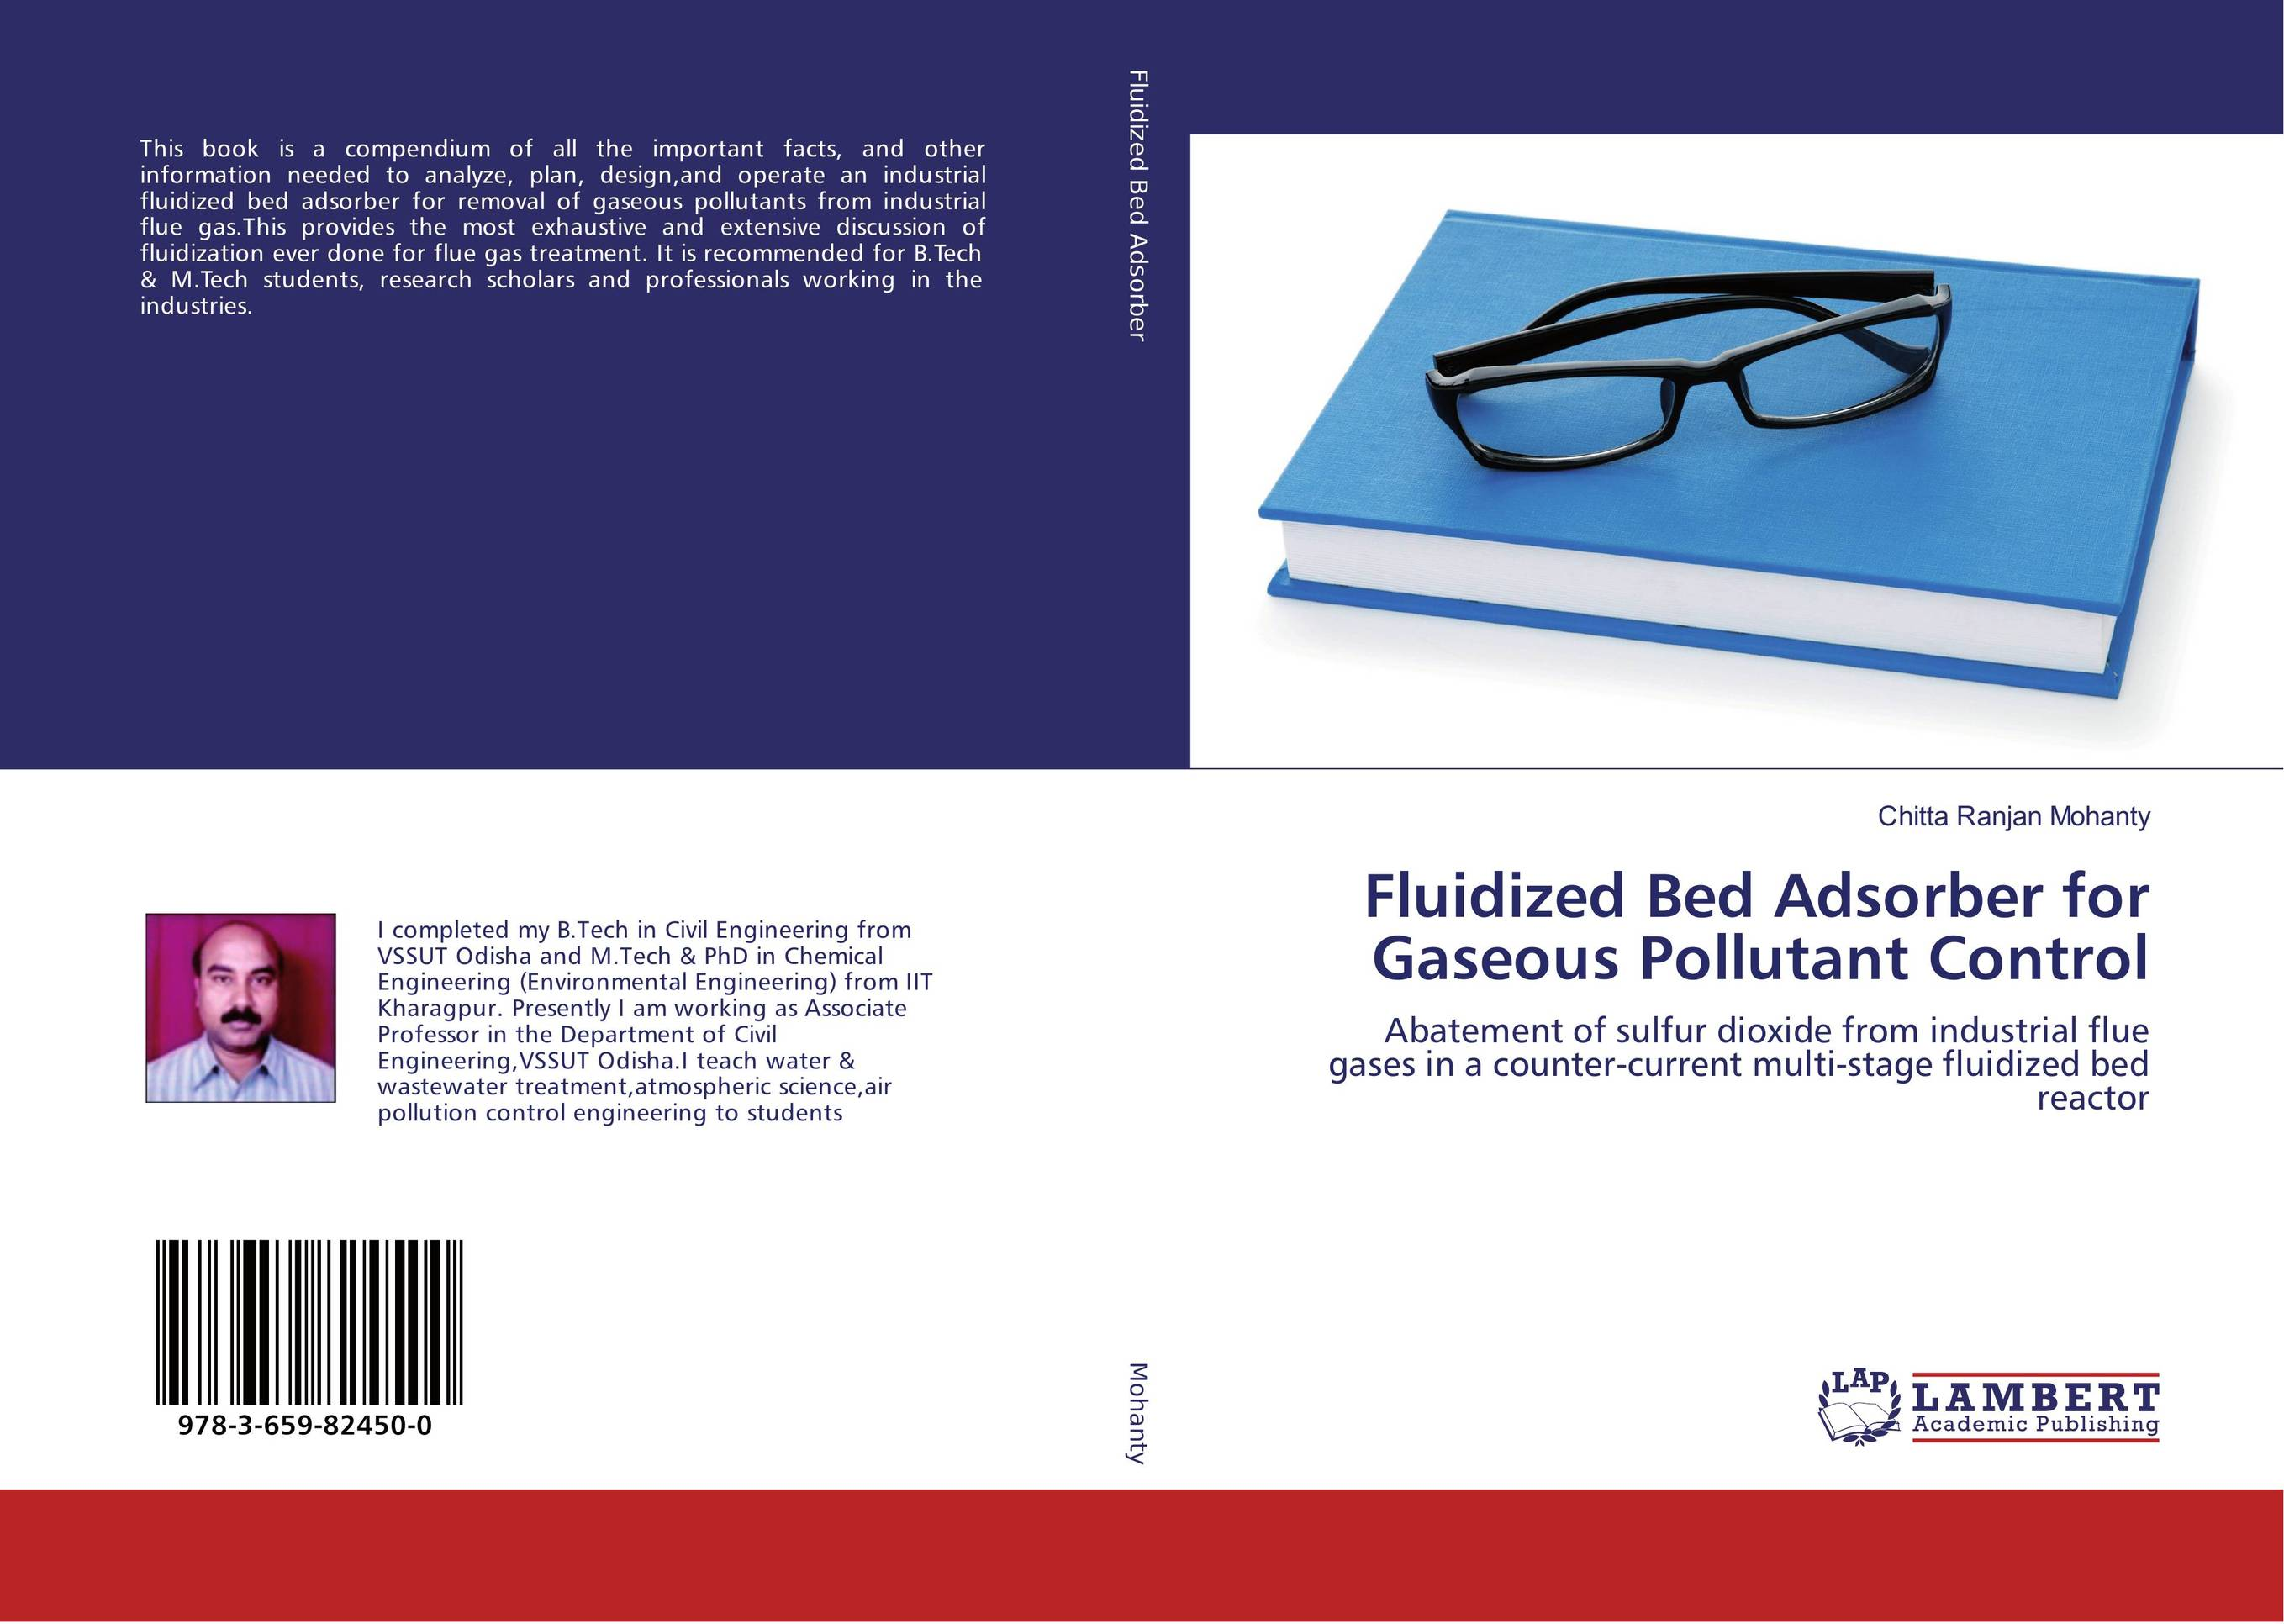 Fluidized Bed Adsorber for Gaseous Pollutant Control compartmented fluidized bed gasifier